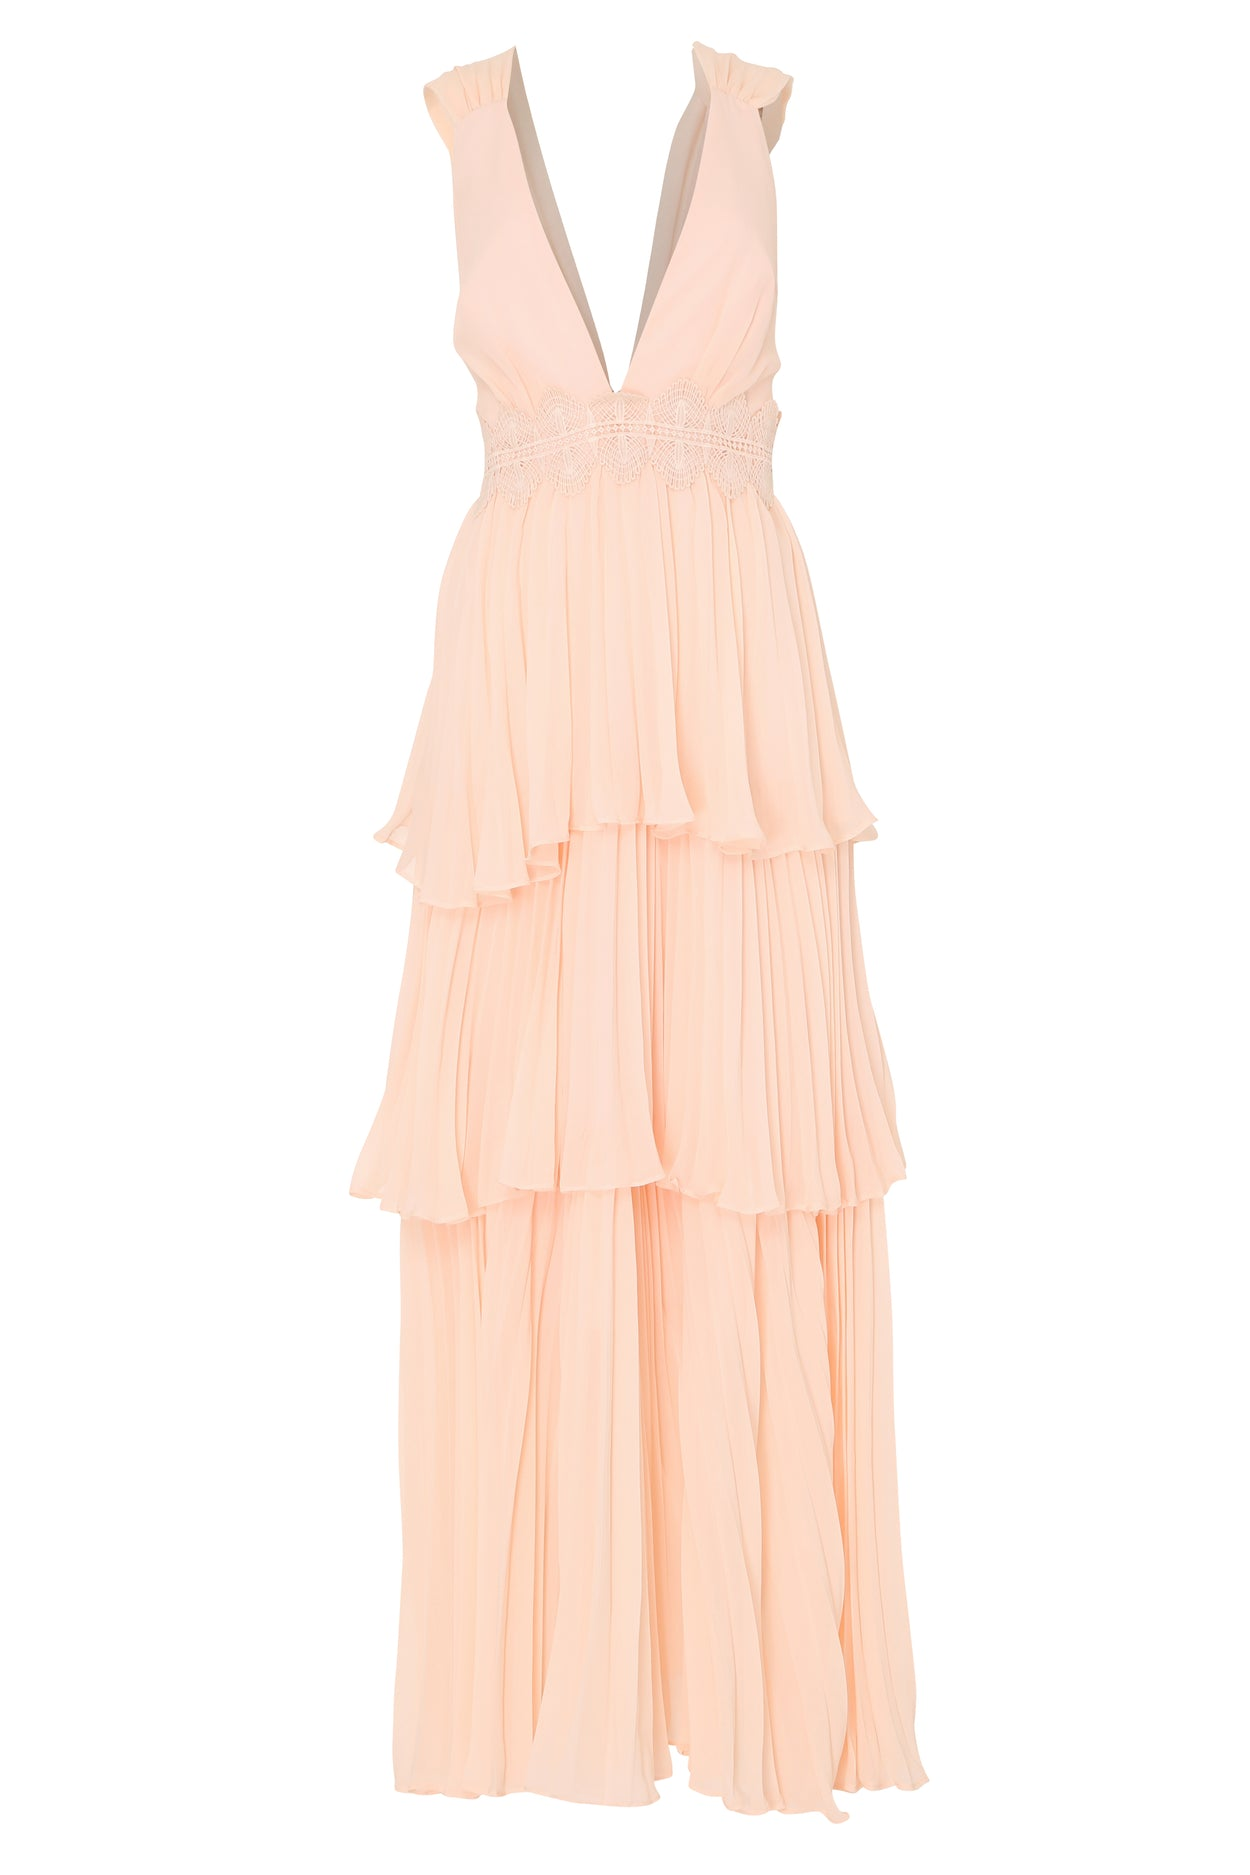 Soft Peach Plunge Front Tie Back Maxi Dress